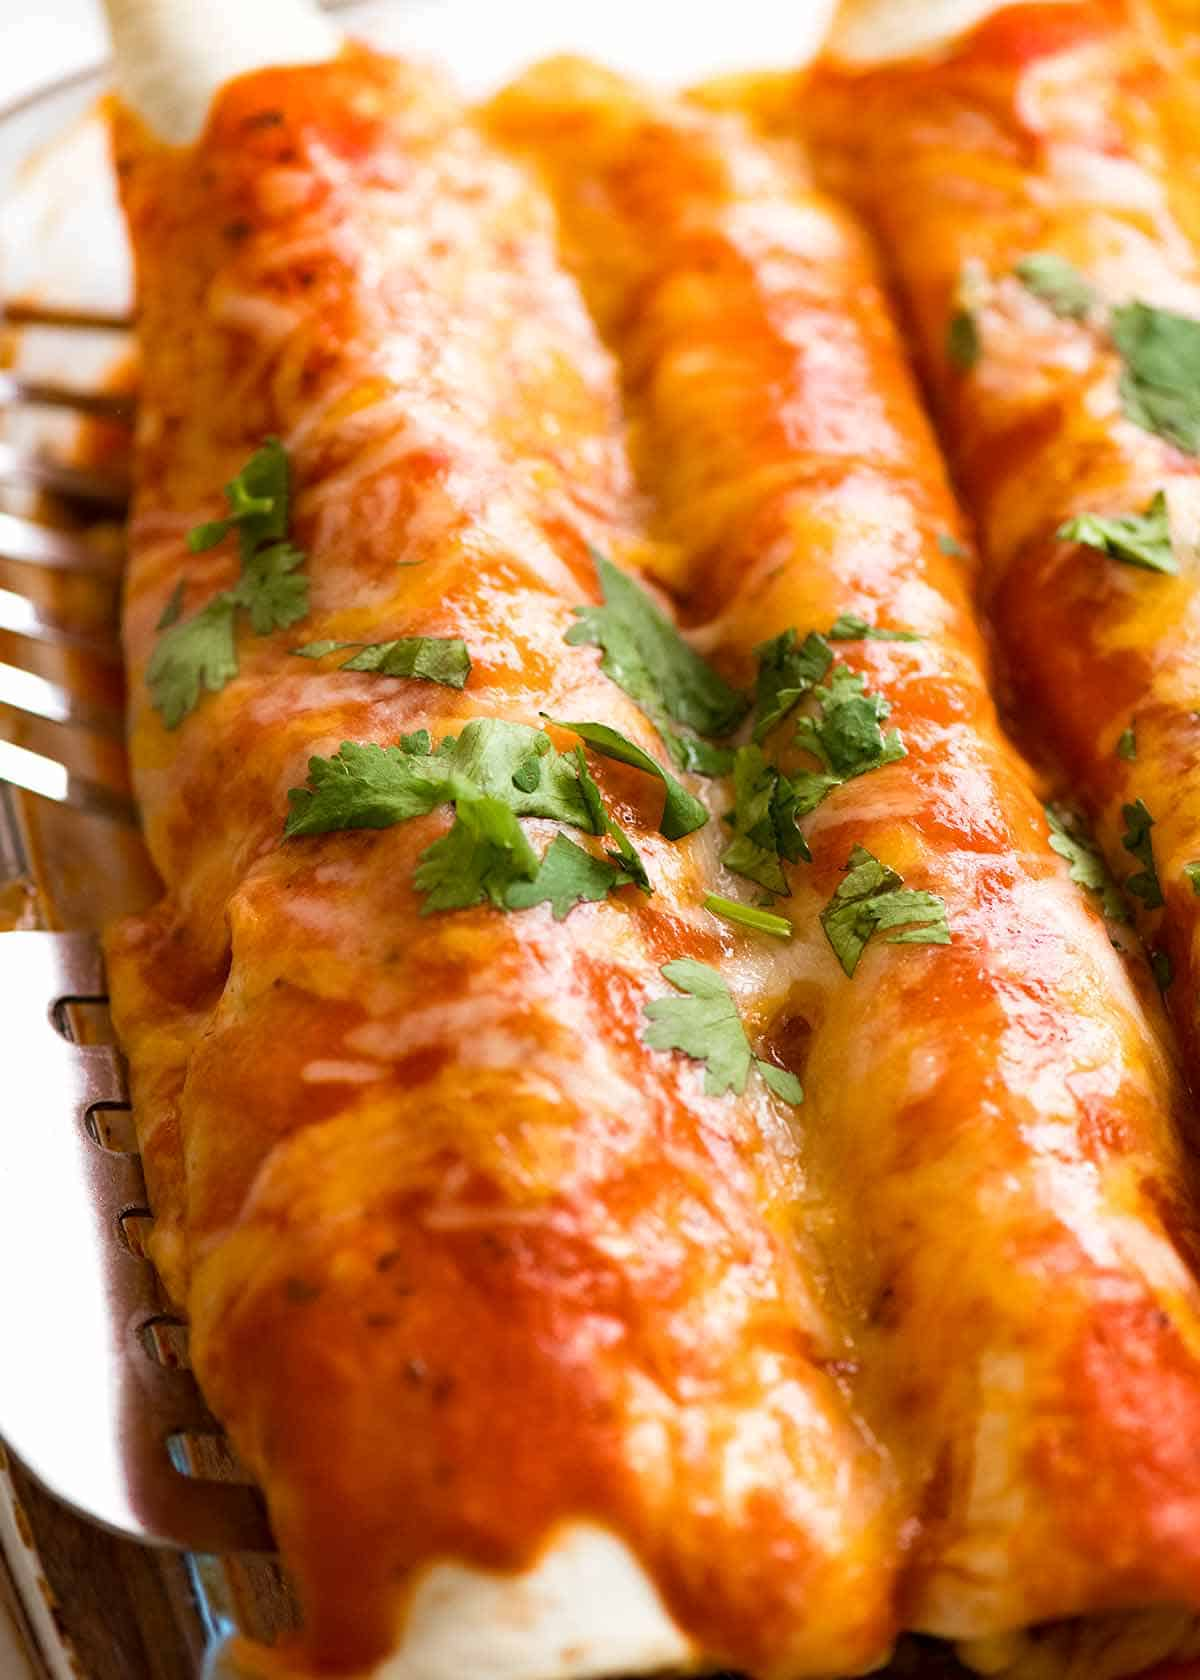 Close up of Chicken Enchiladas in a baking dish, fresh out of the oven